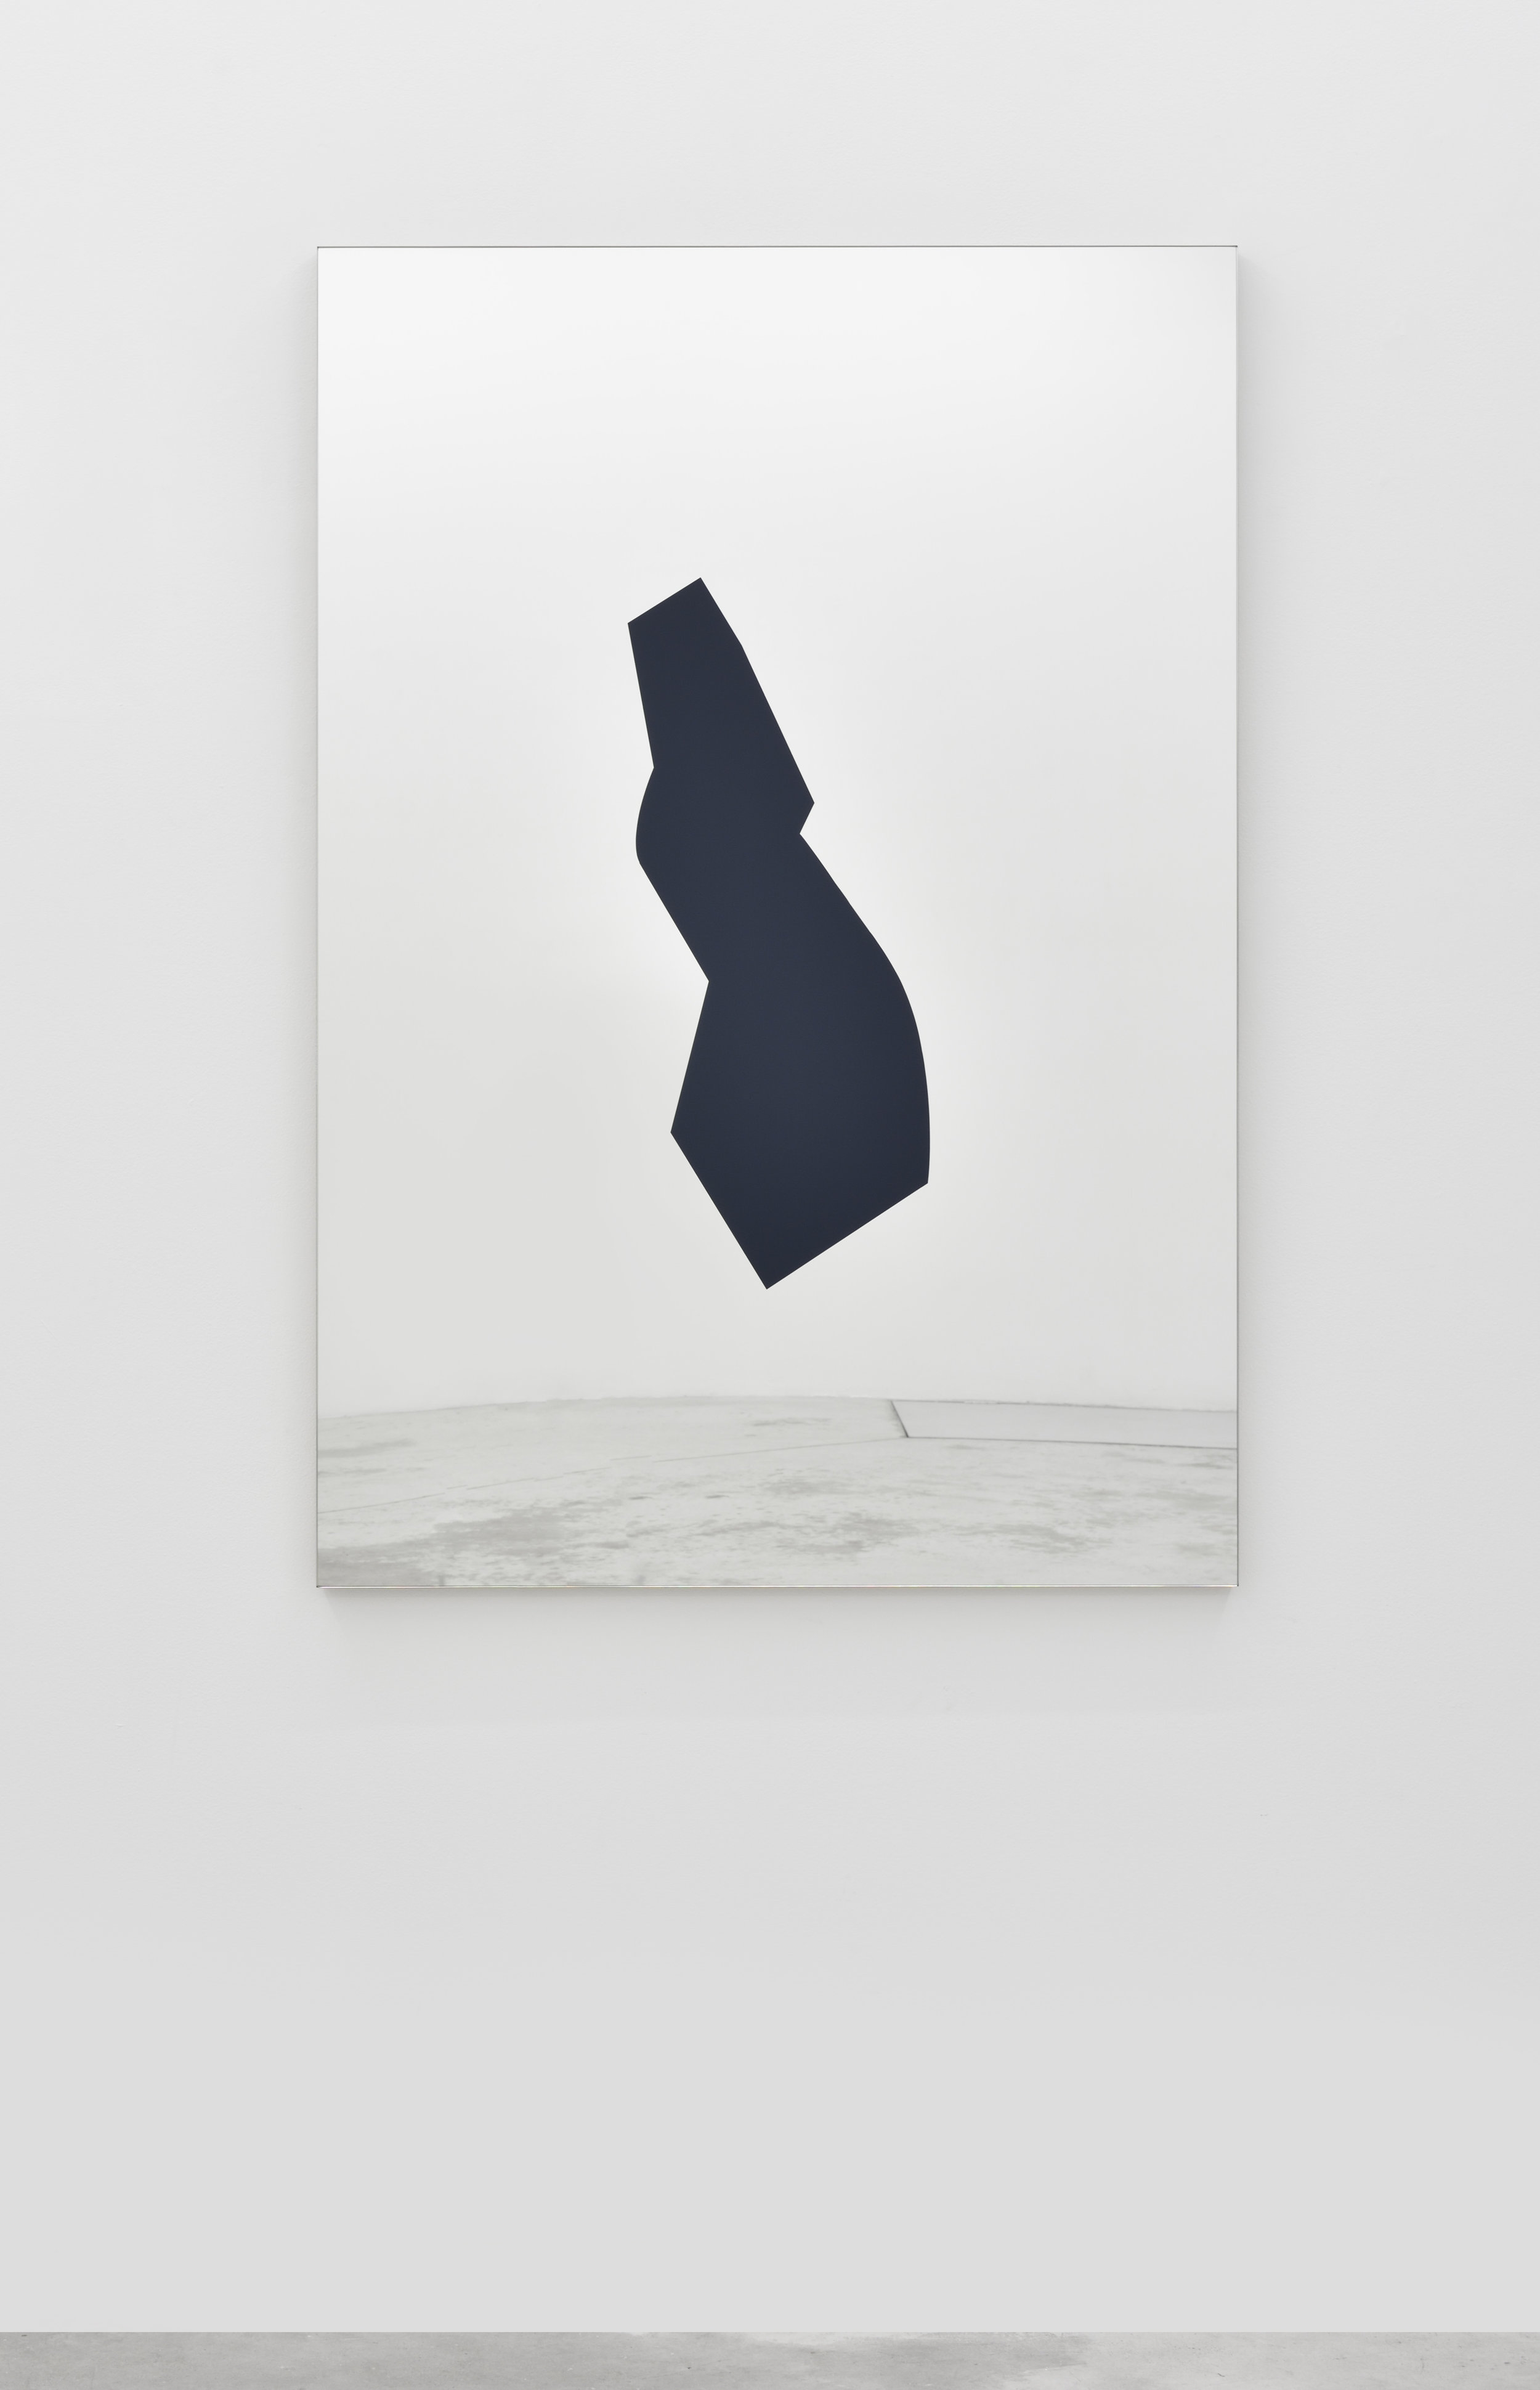 Mirage (60P), 2016 gloss paint on mirror 130 x 89 cm - 51 1/8 x 35 inches